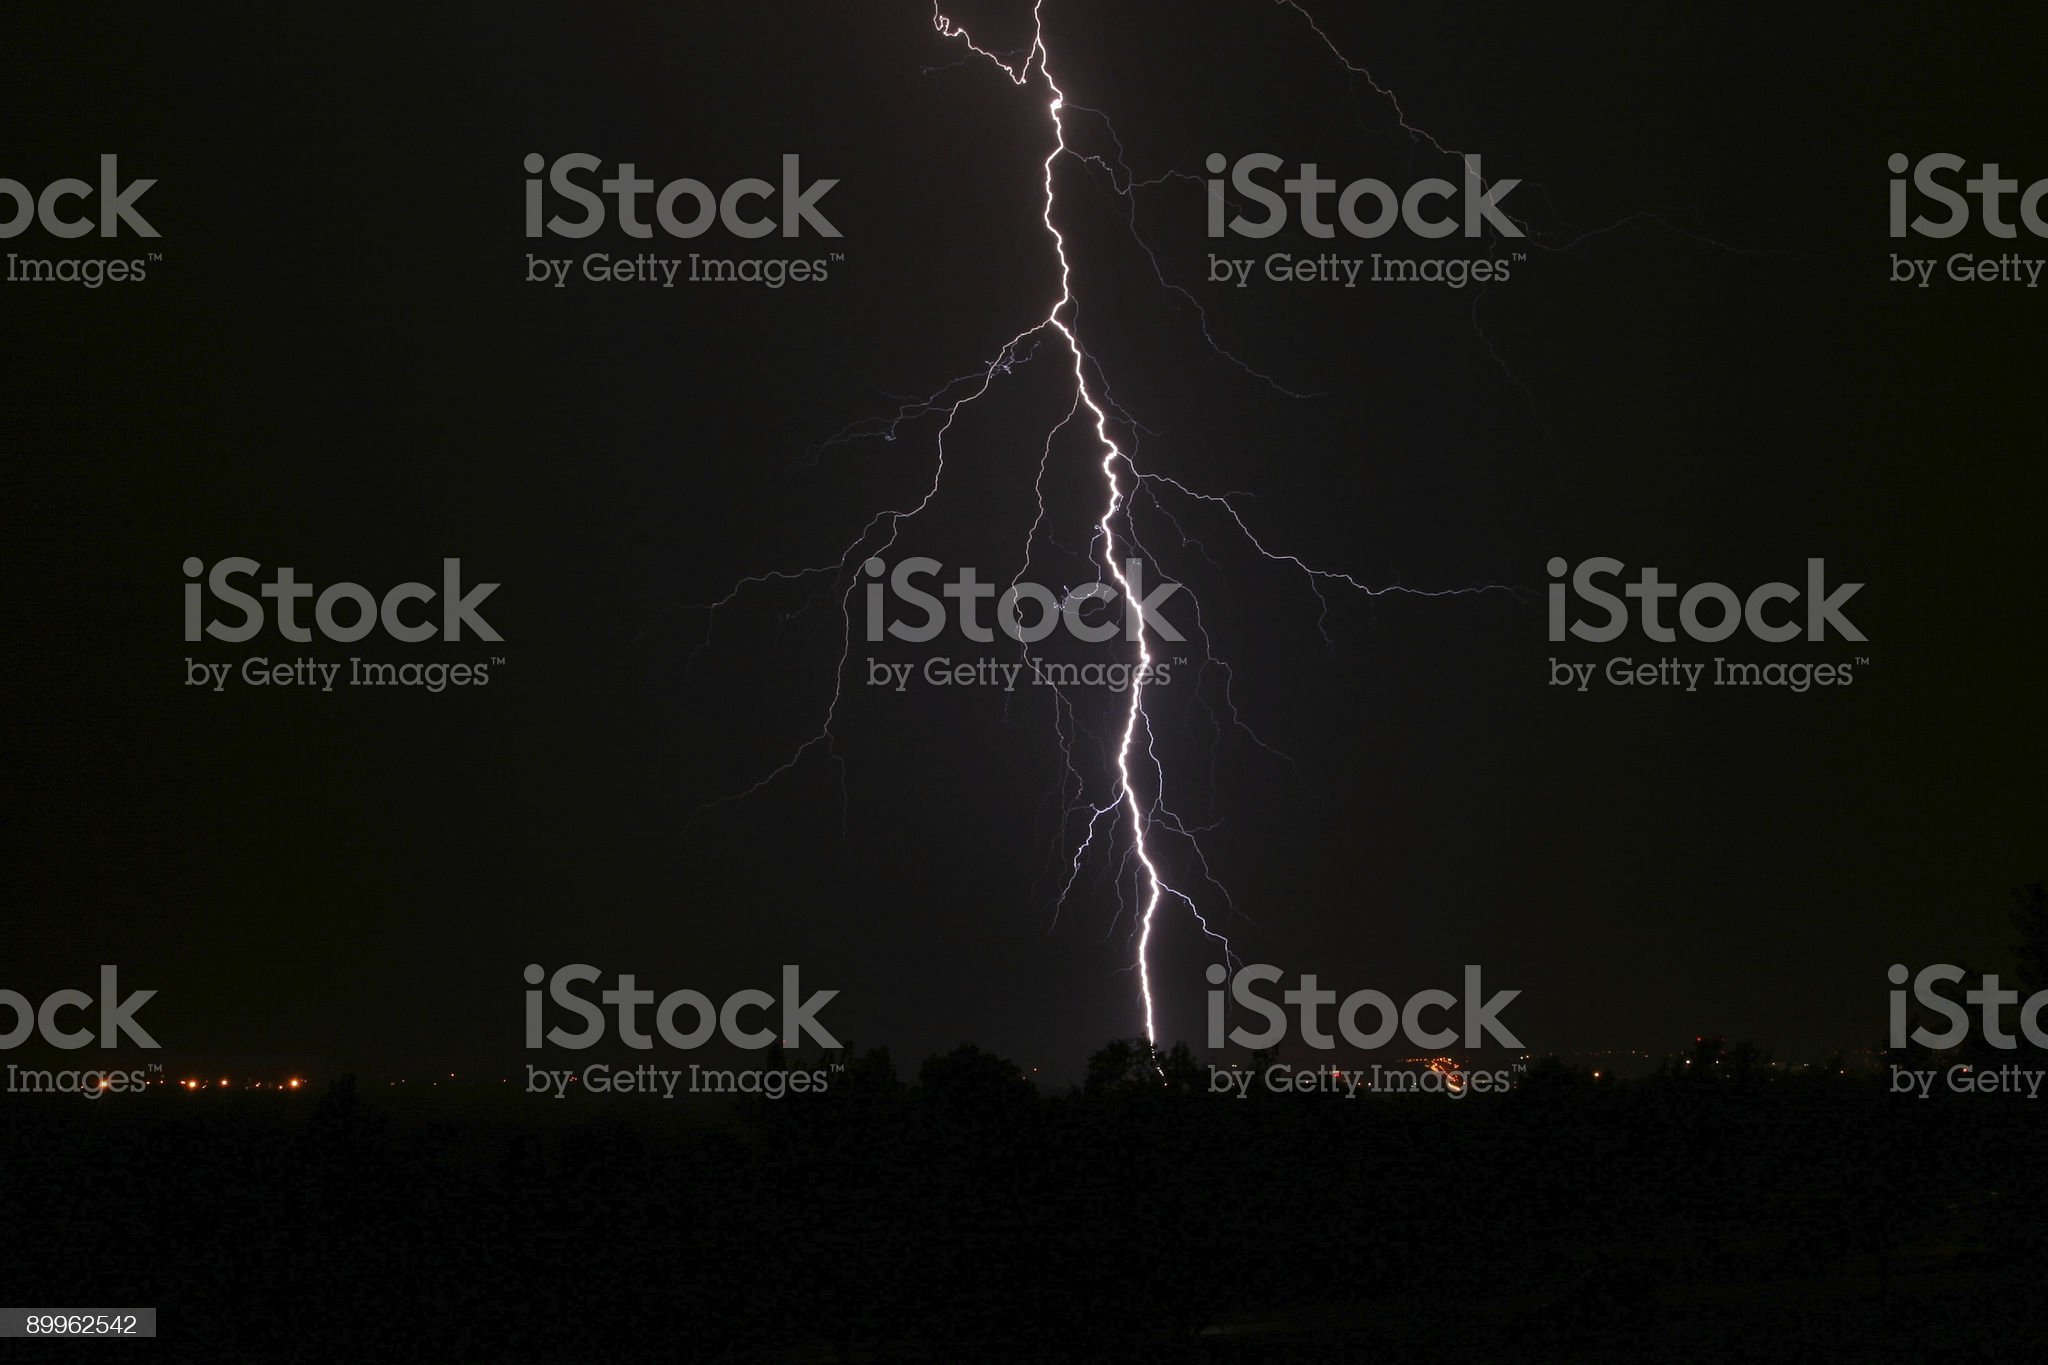 Large Lightening Bolt royalty-free stock photo